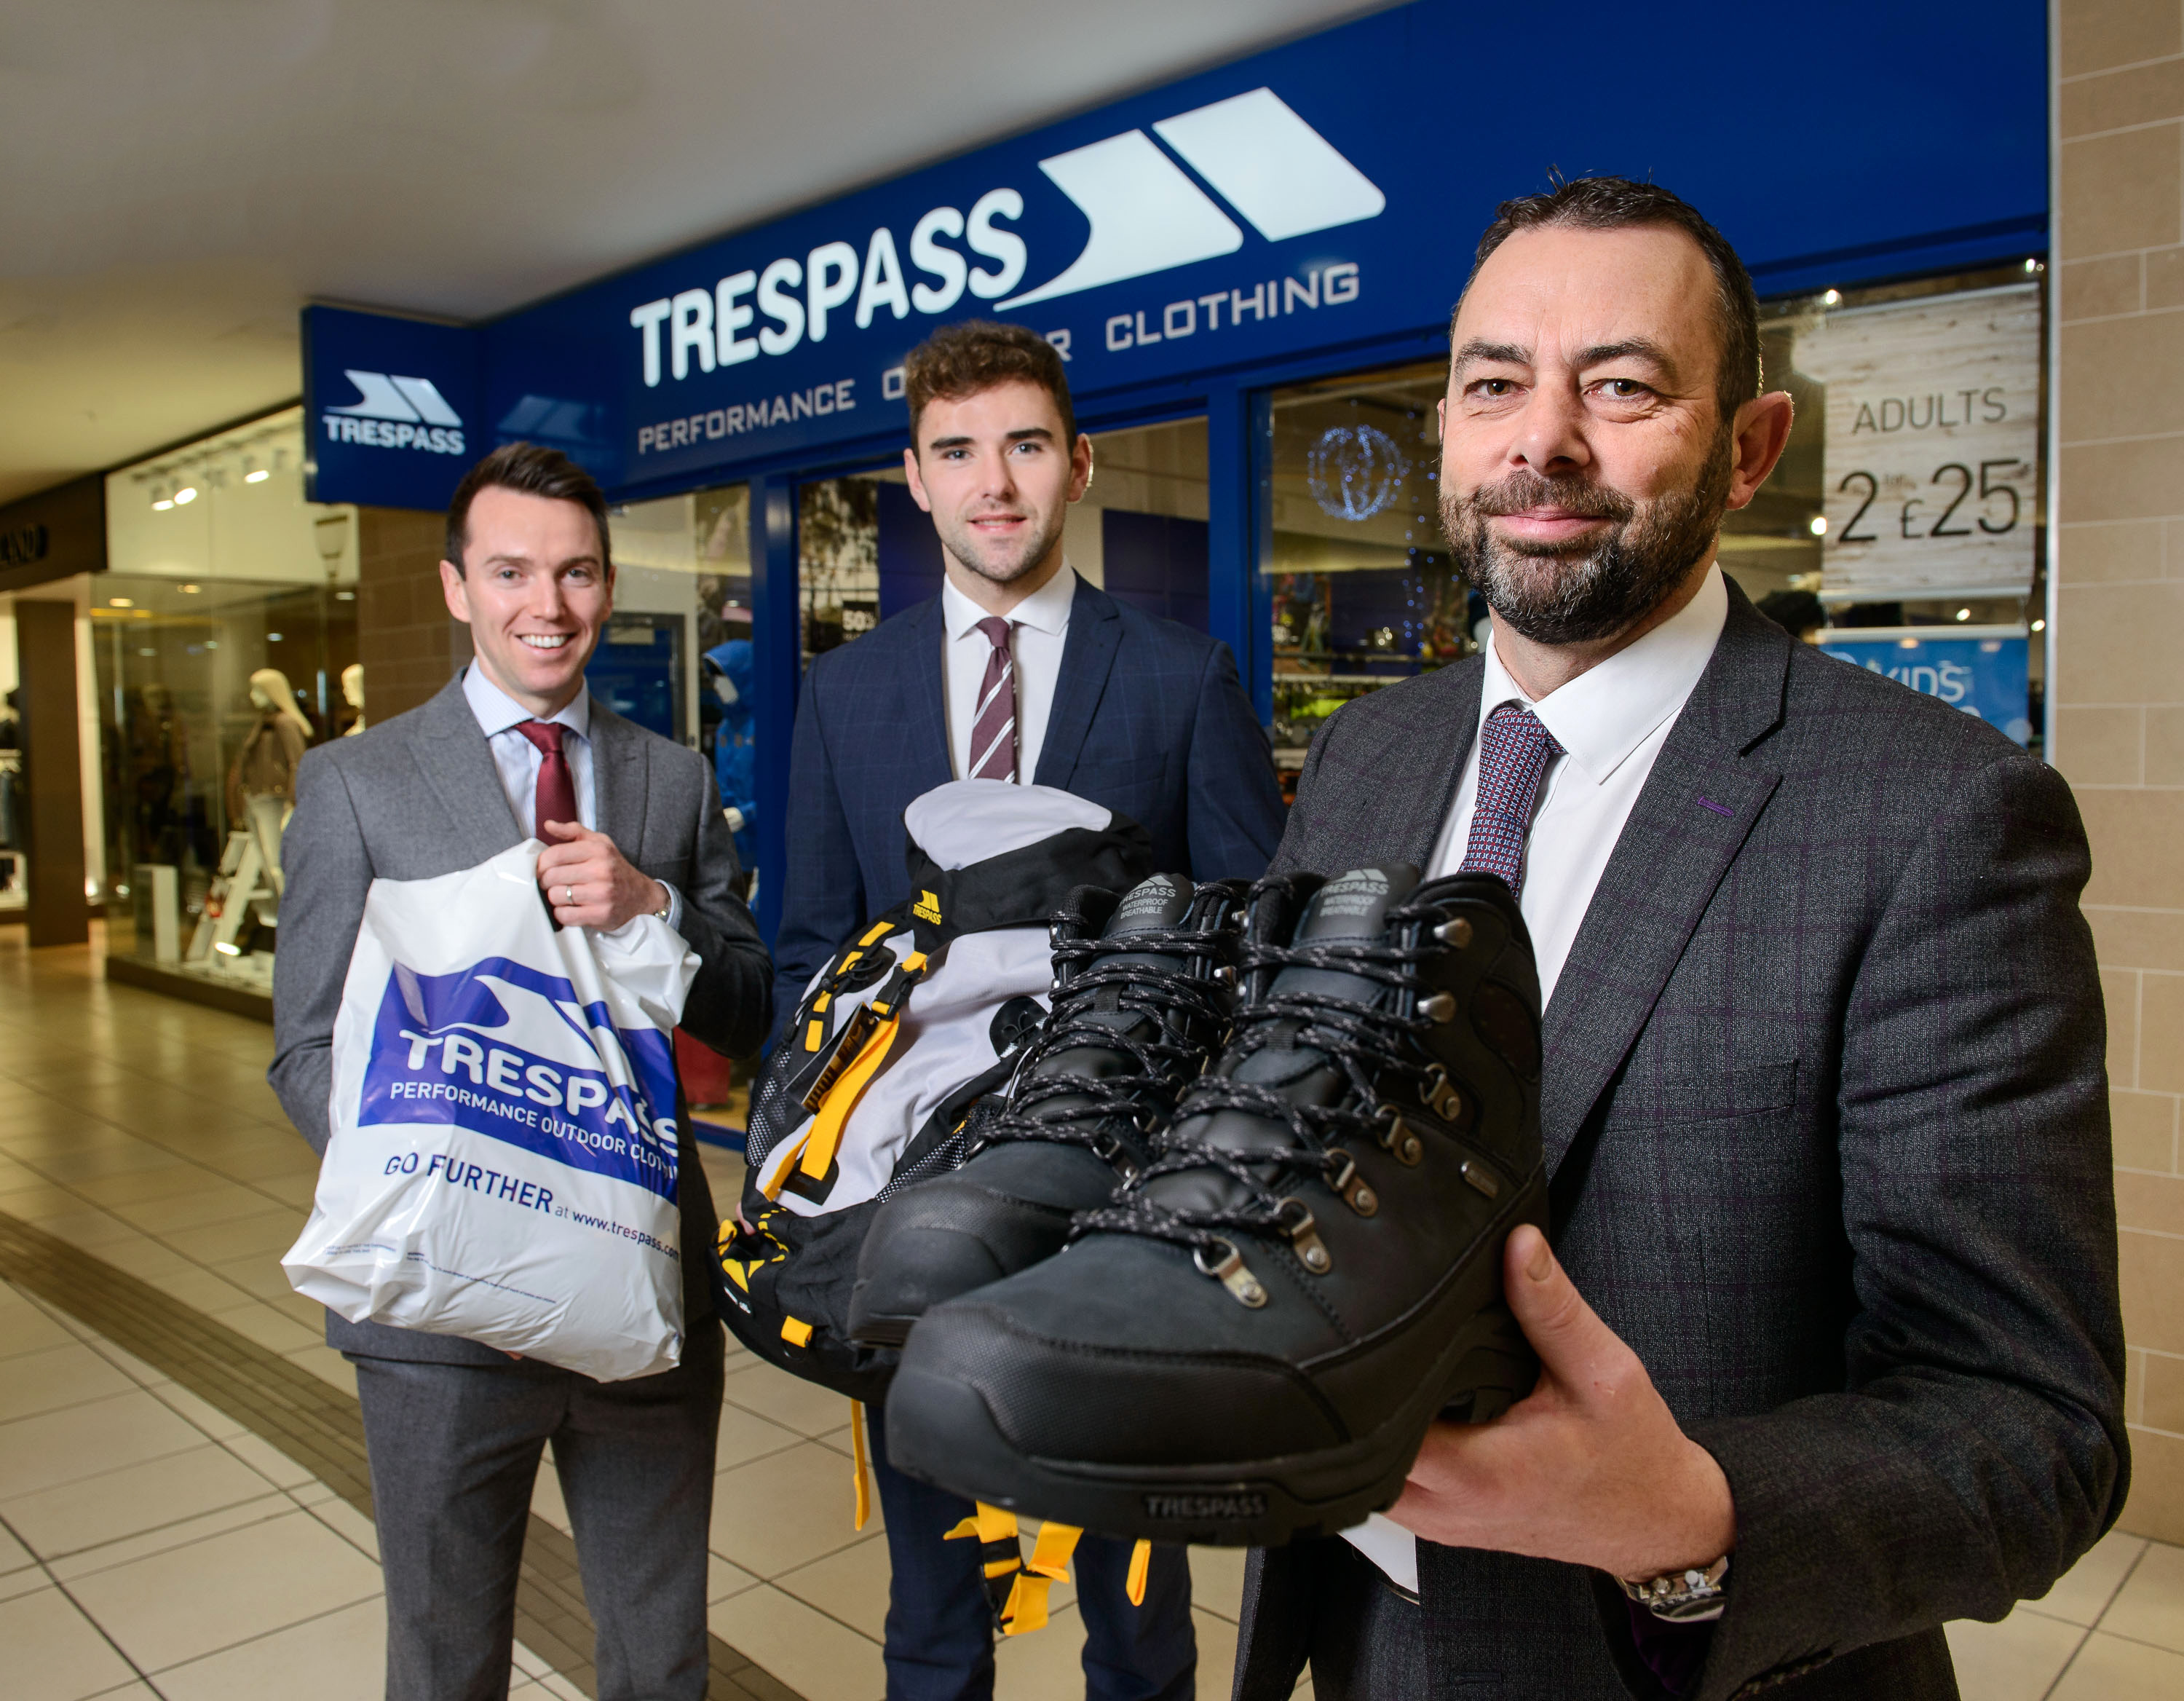 Public Relations: Welcoming the arrival, which has created five new jobs are, from left, Tony Kernan, Associate Director at Lambert Smith Hampton, Andrew Knox, Surveyor, Lisney and centre manager Gareth Thomas. Trespass has taken a prime 2,200 sq ft unit adjacent to River Island, New Look, and the recently refurbished Costa. The centre is under the ownership of EML Meadowlane Ltd and is home to an impressive portfolio of retailers including Dunnes Stores, Holland & Barrett, Boots, O2, Poundland and Iceland.